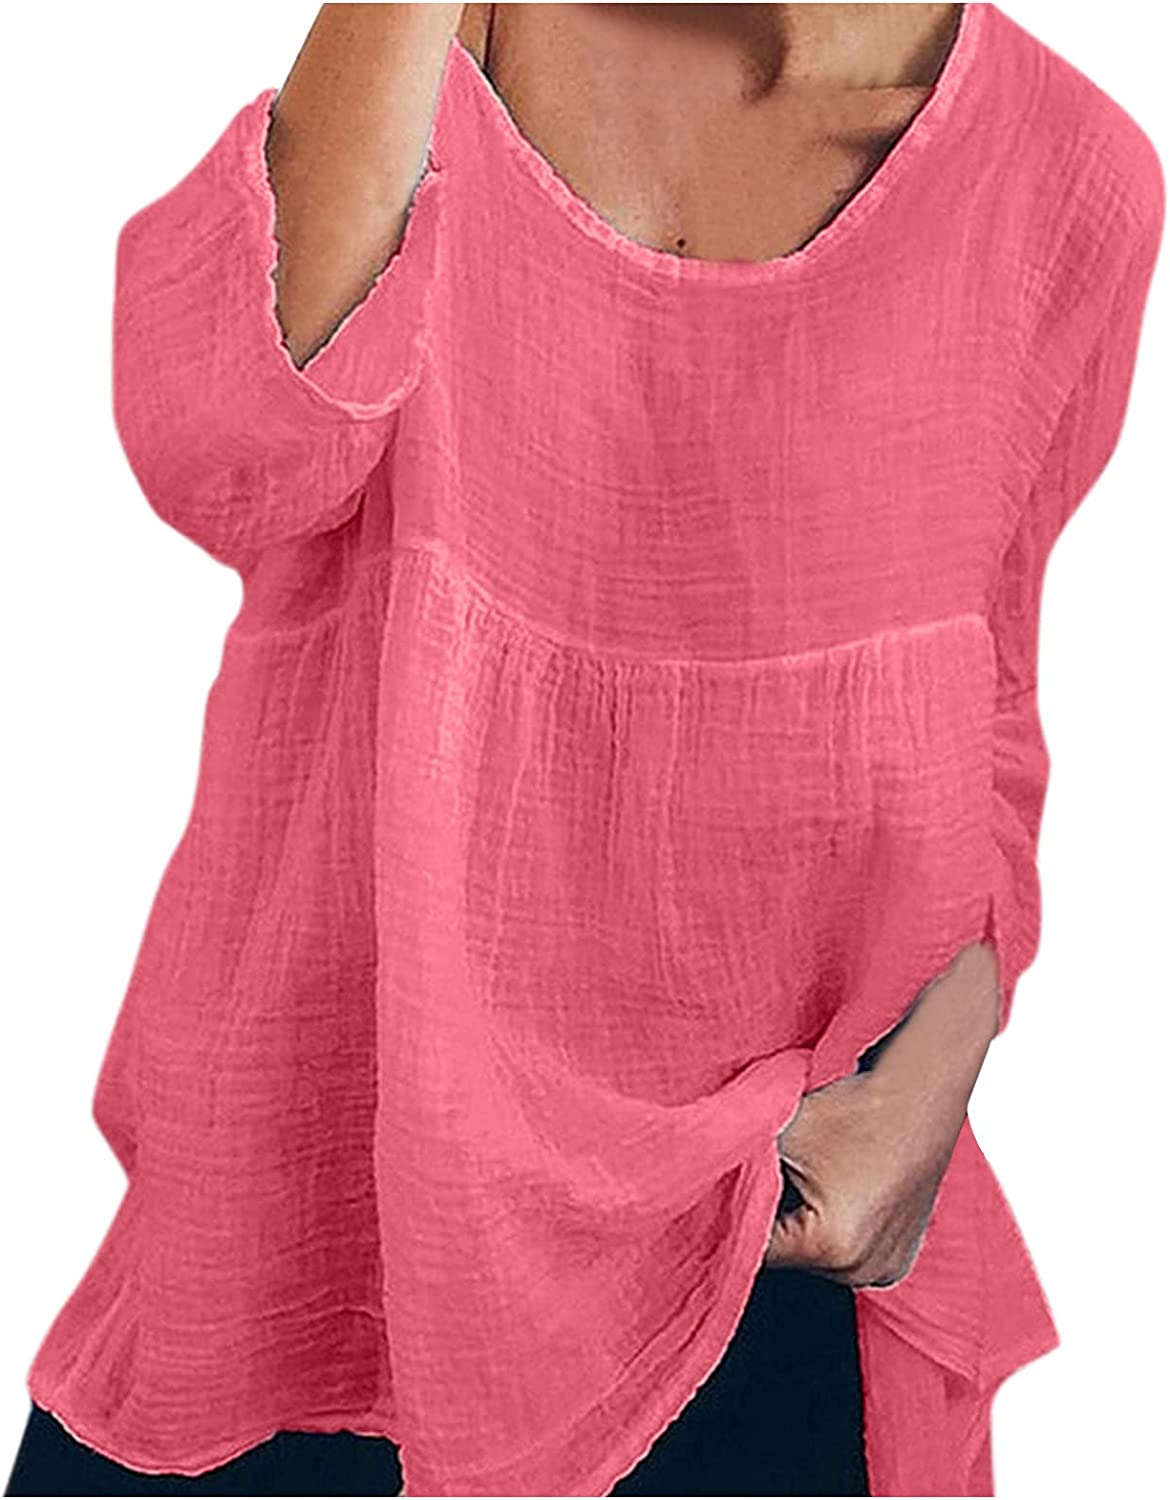 Women's Plus Size 3/4 Sleeve Tees Cotton Linen Tops Loose Solid Color Casual Shirt Boatneck Comfortable Tunic Blouses